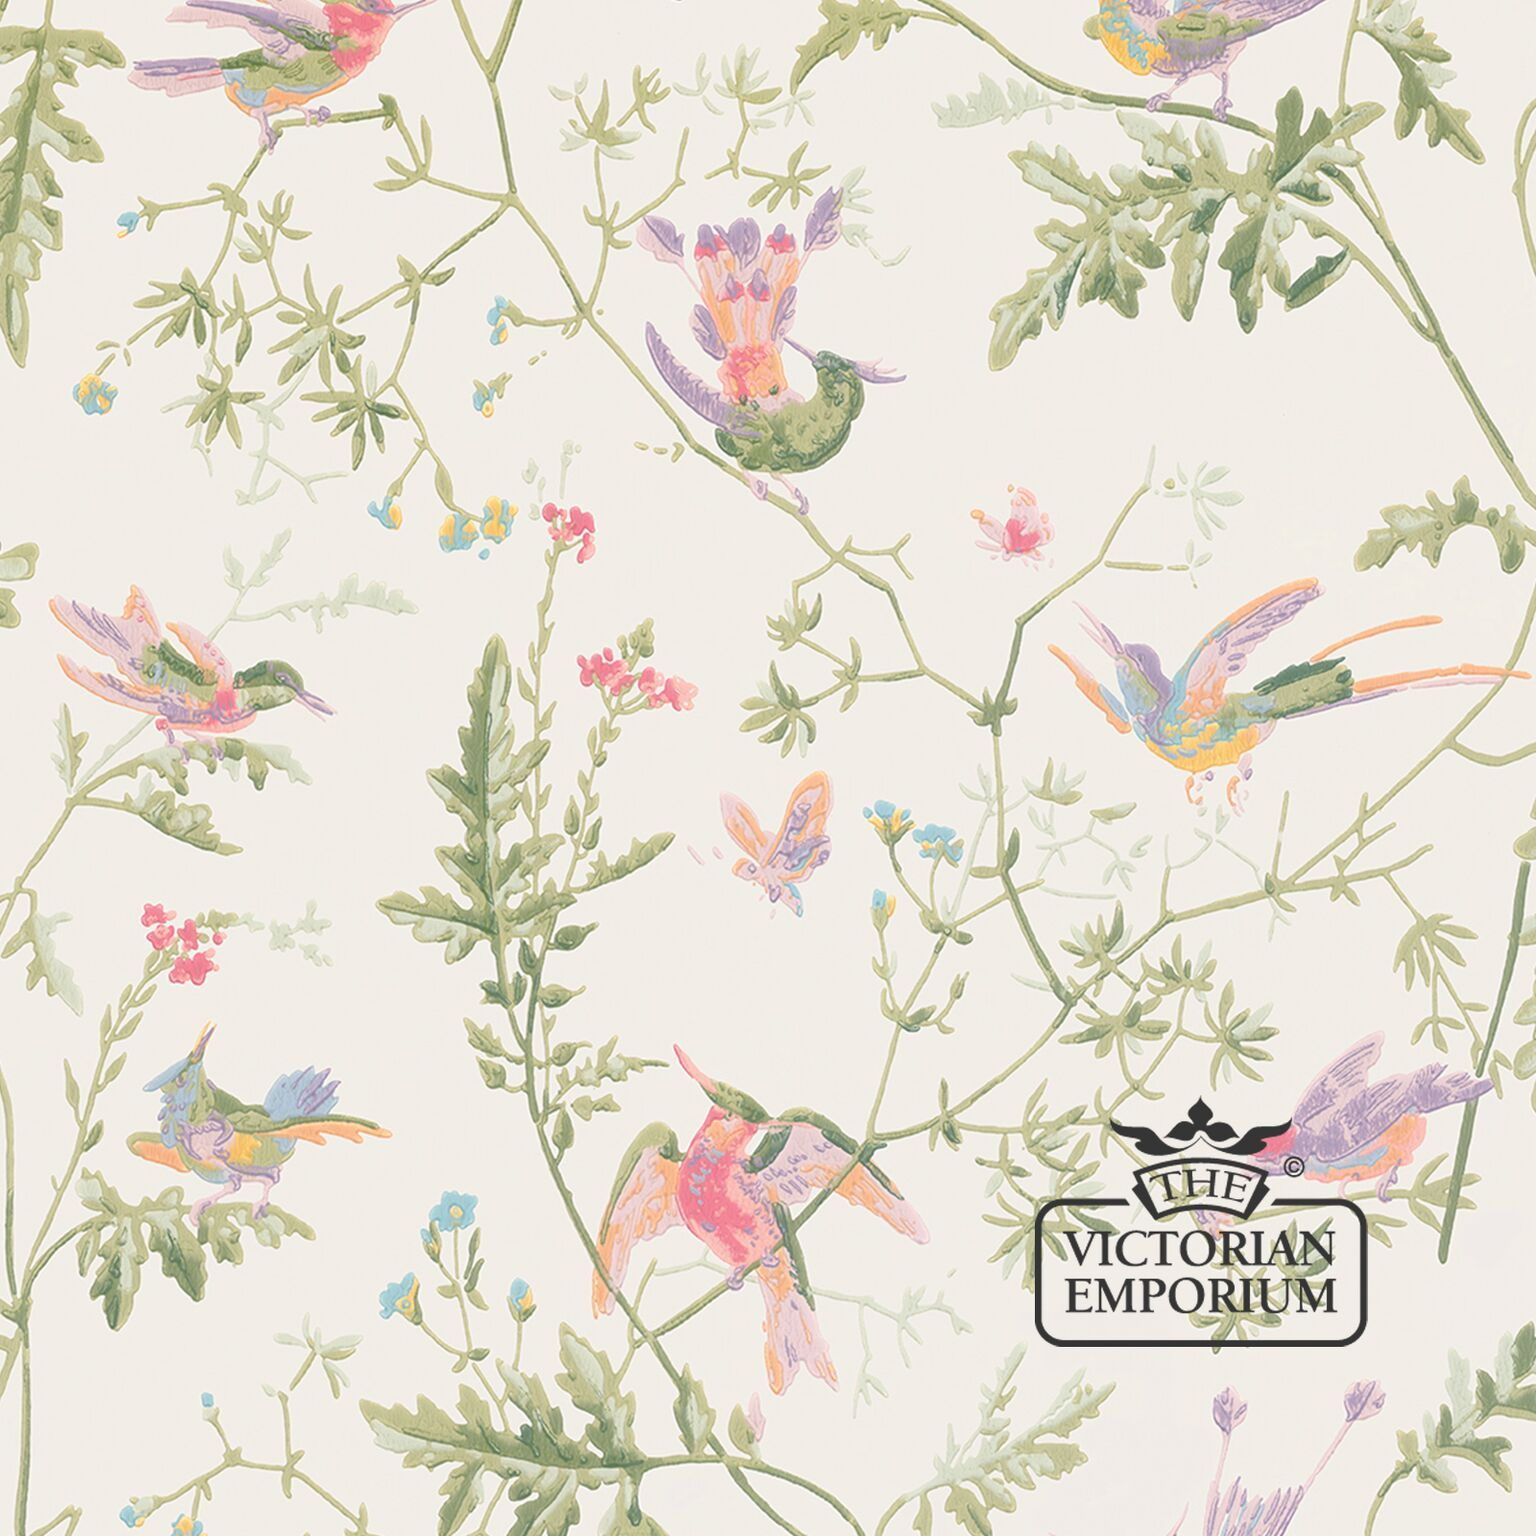 Hummingbirds wallpaper in choice of five colourways fish birds insects an - Papier peint oiseaux ...